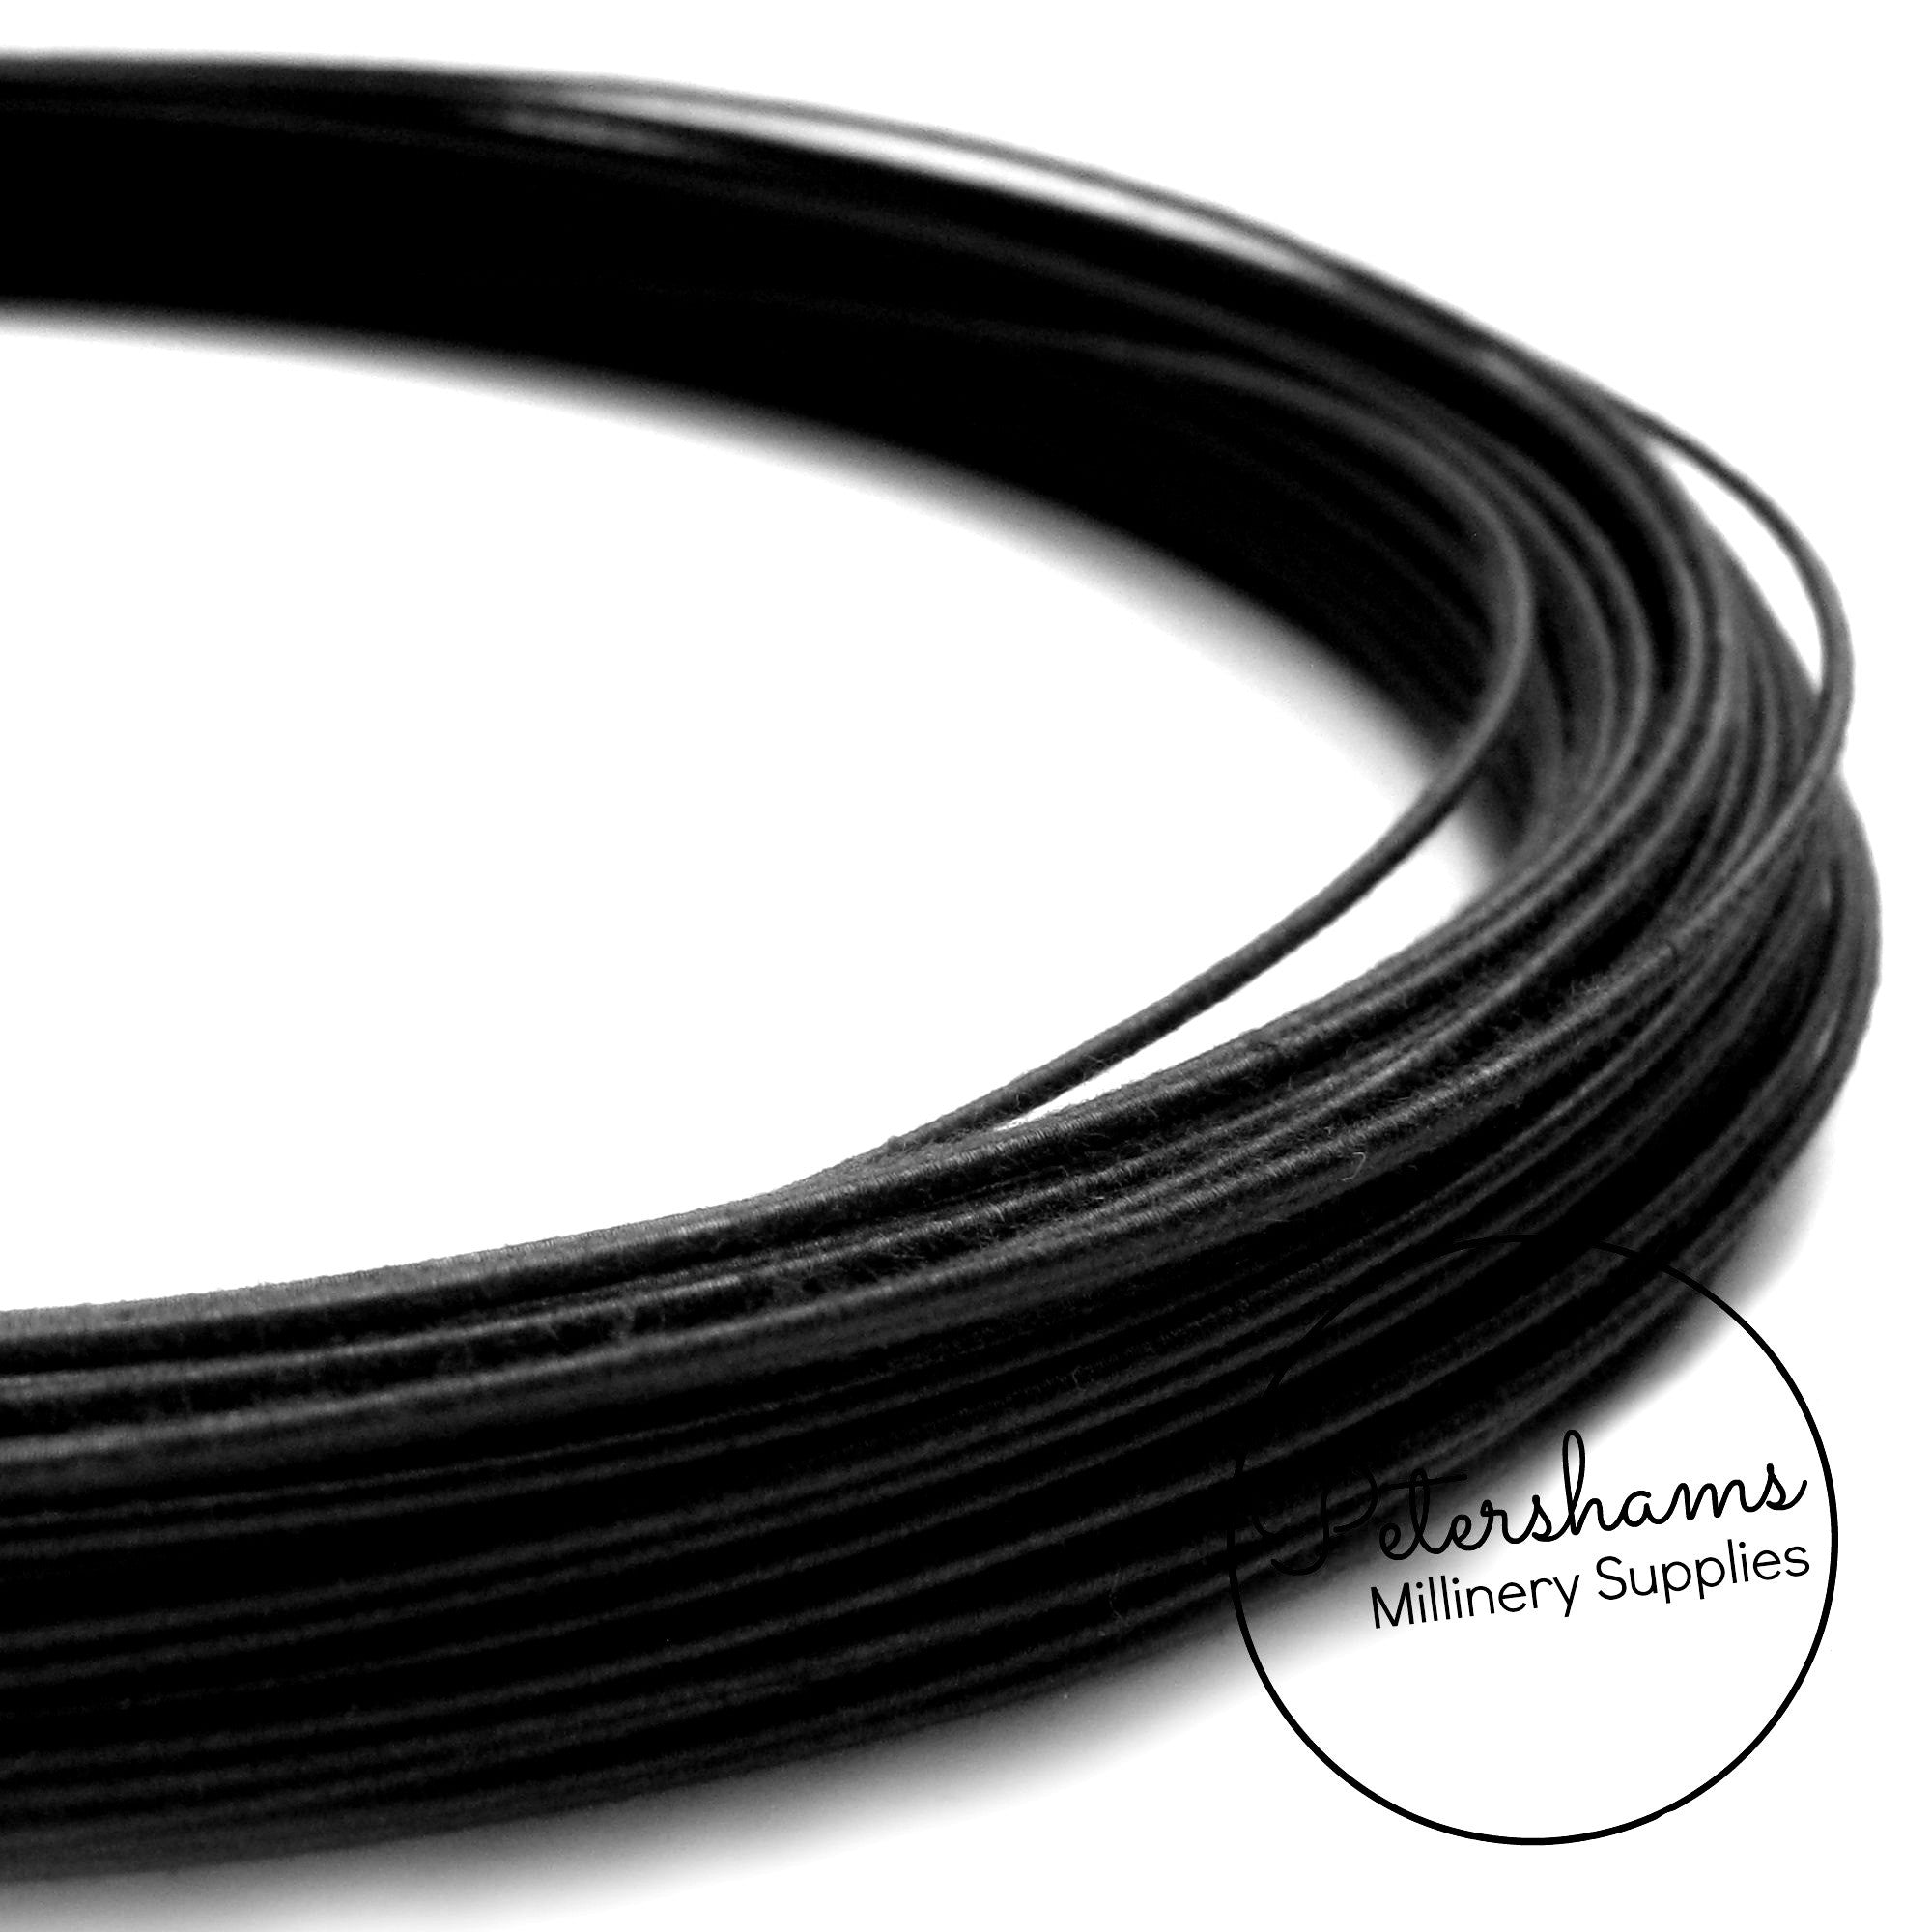 1.2mm Extra Firm Cotton Covered Millinery Wire – Petershams ...